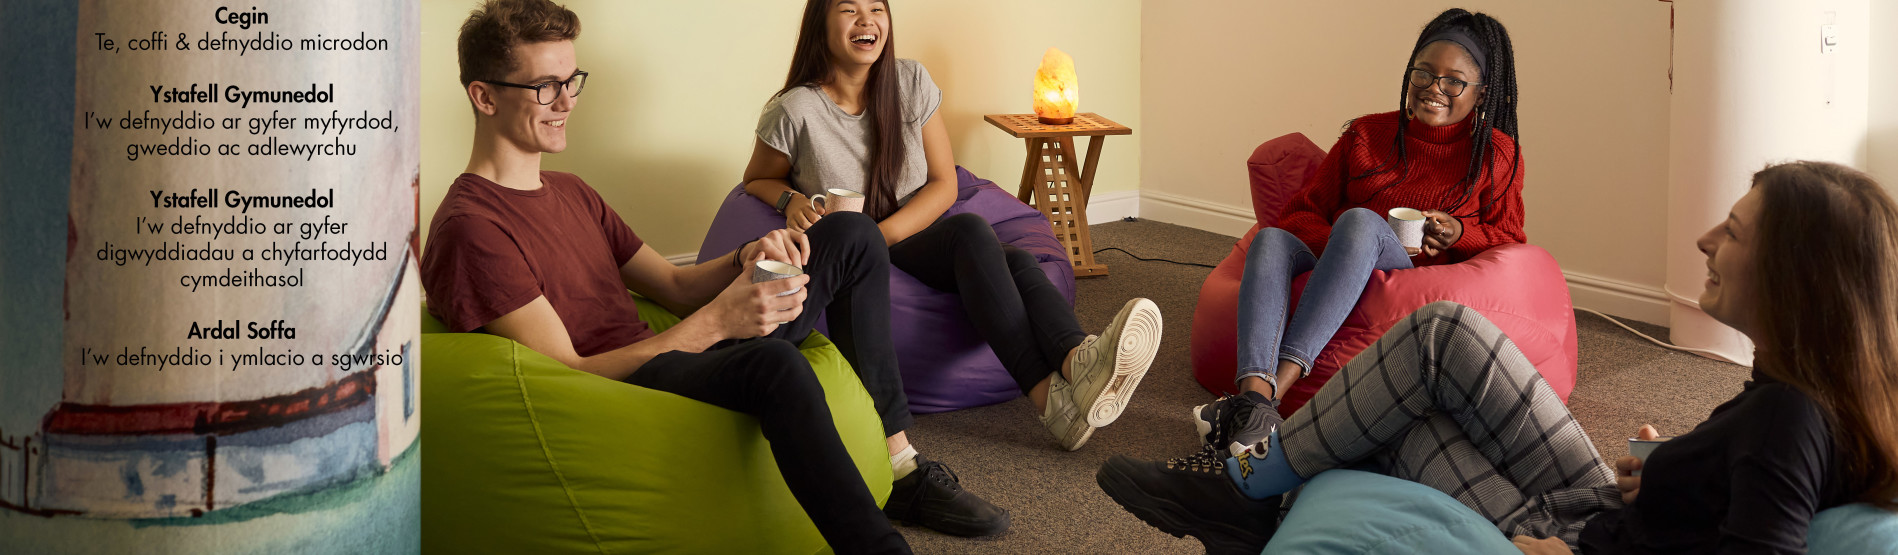 Four students are sitting on beanbags in The Lighthouse, Singleton Campus. They are holding mugs and smiling.